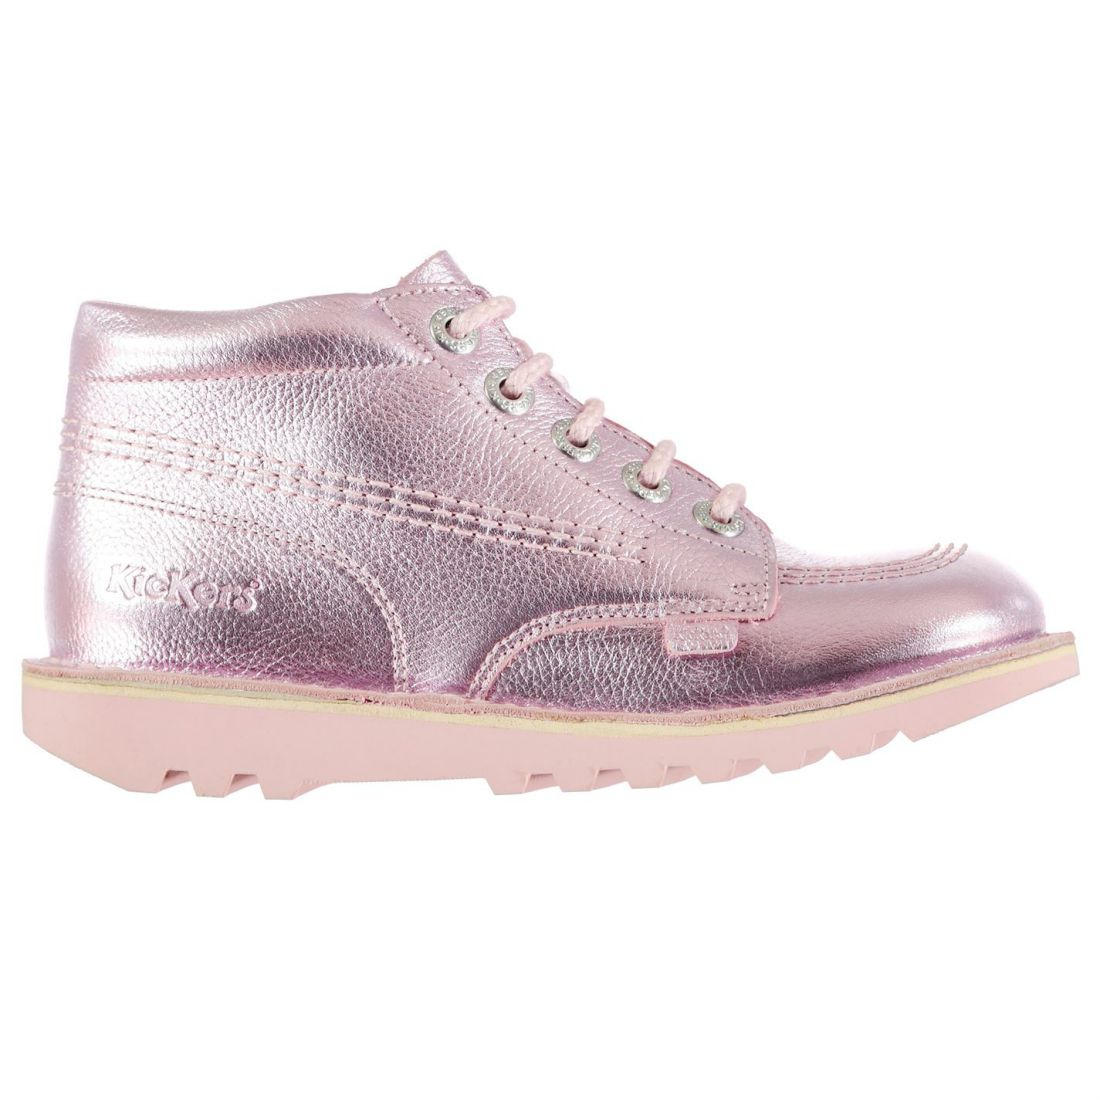 Kickers Hi Ptl ChdCL99 Childrens Loafers